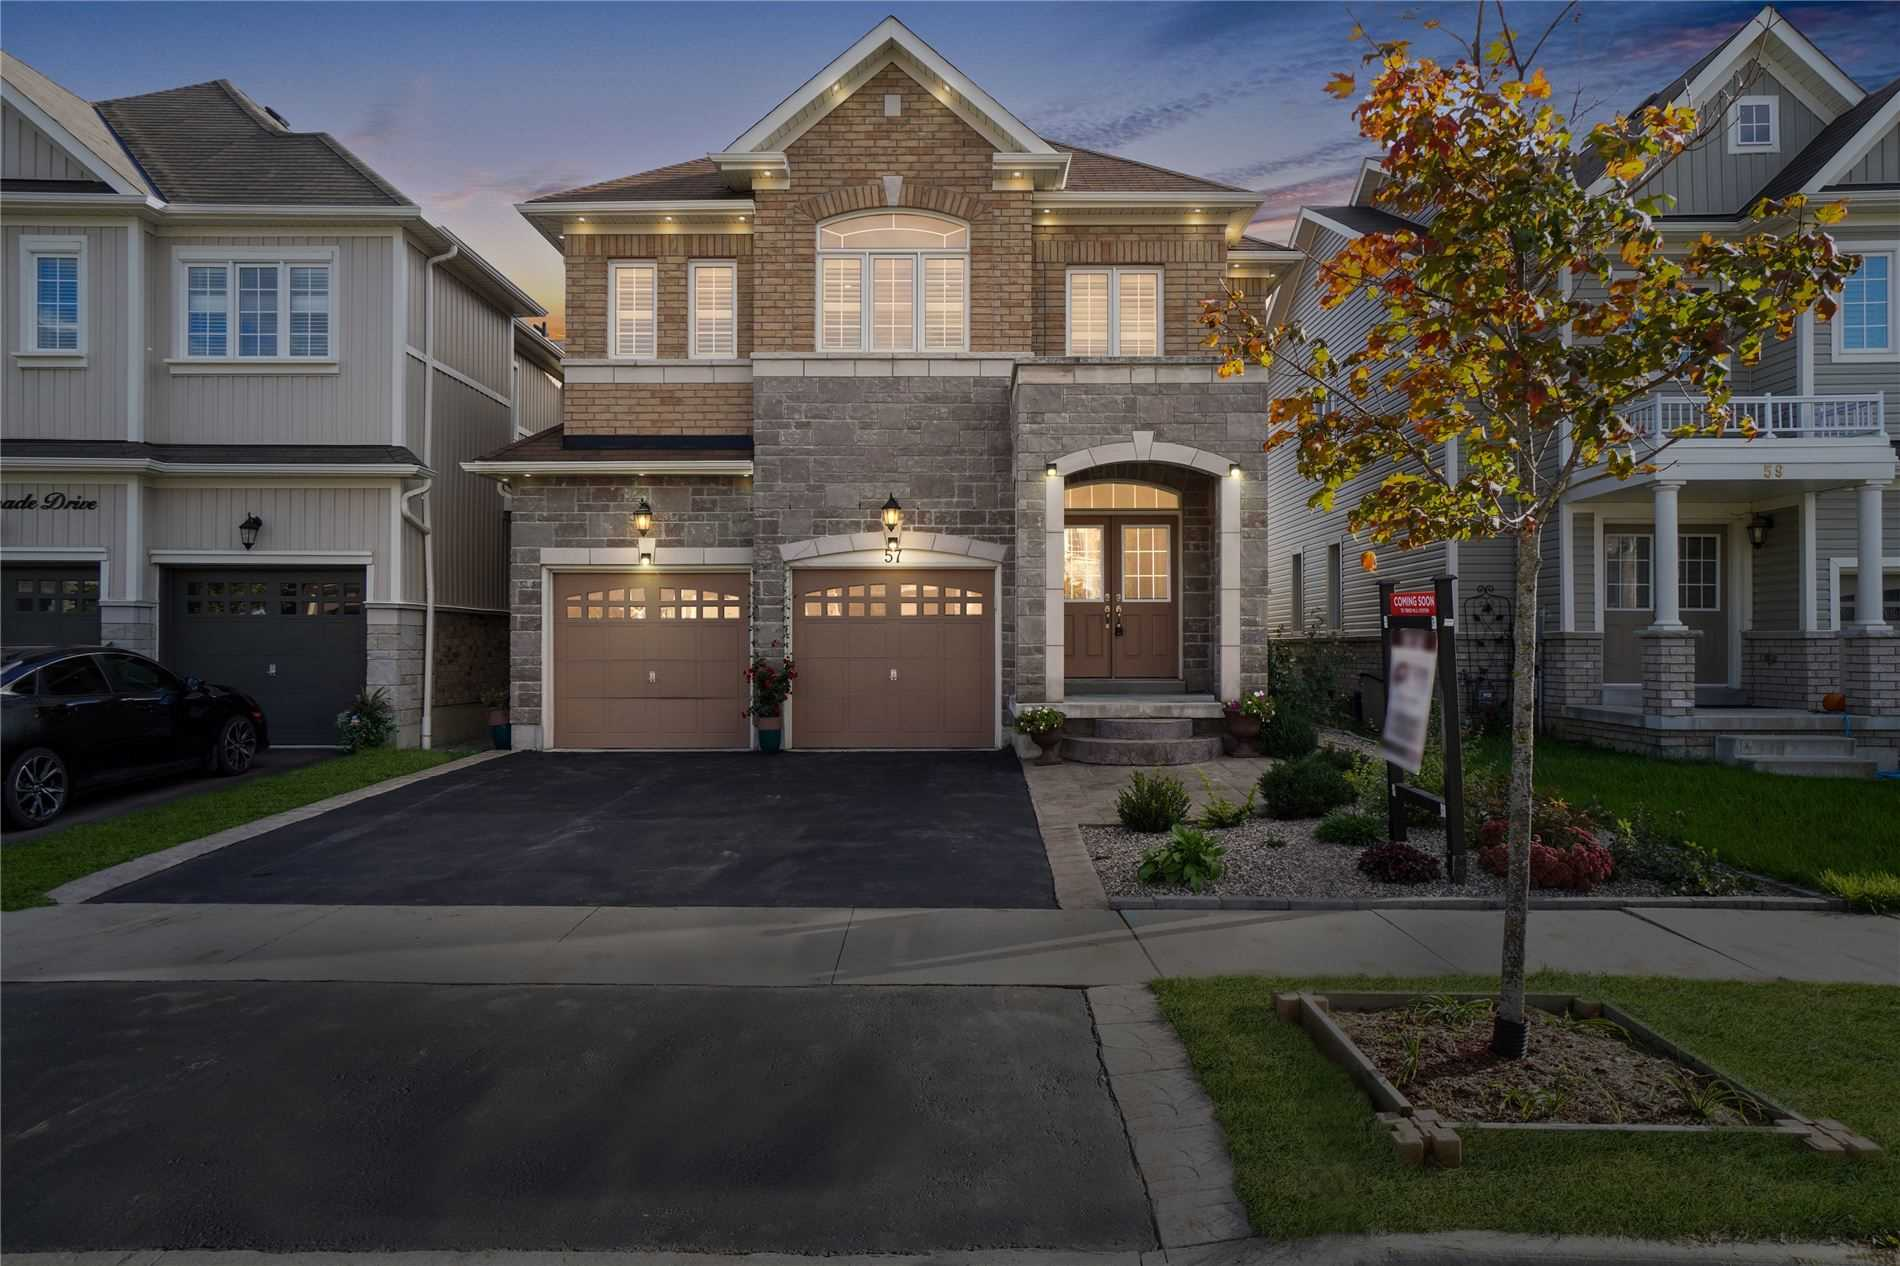 Detached house For Sale In Whitby - 57 Promenade Dr, Whitby, Ontario, Canada L1R0L5 , 4 Bedrooms Bedrooms, ,4 BathroomsBathrooms,Detached,For Sale,Promenade